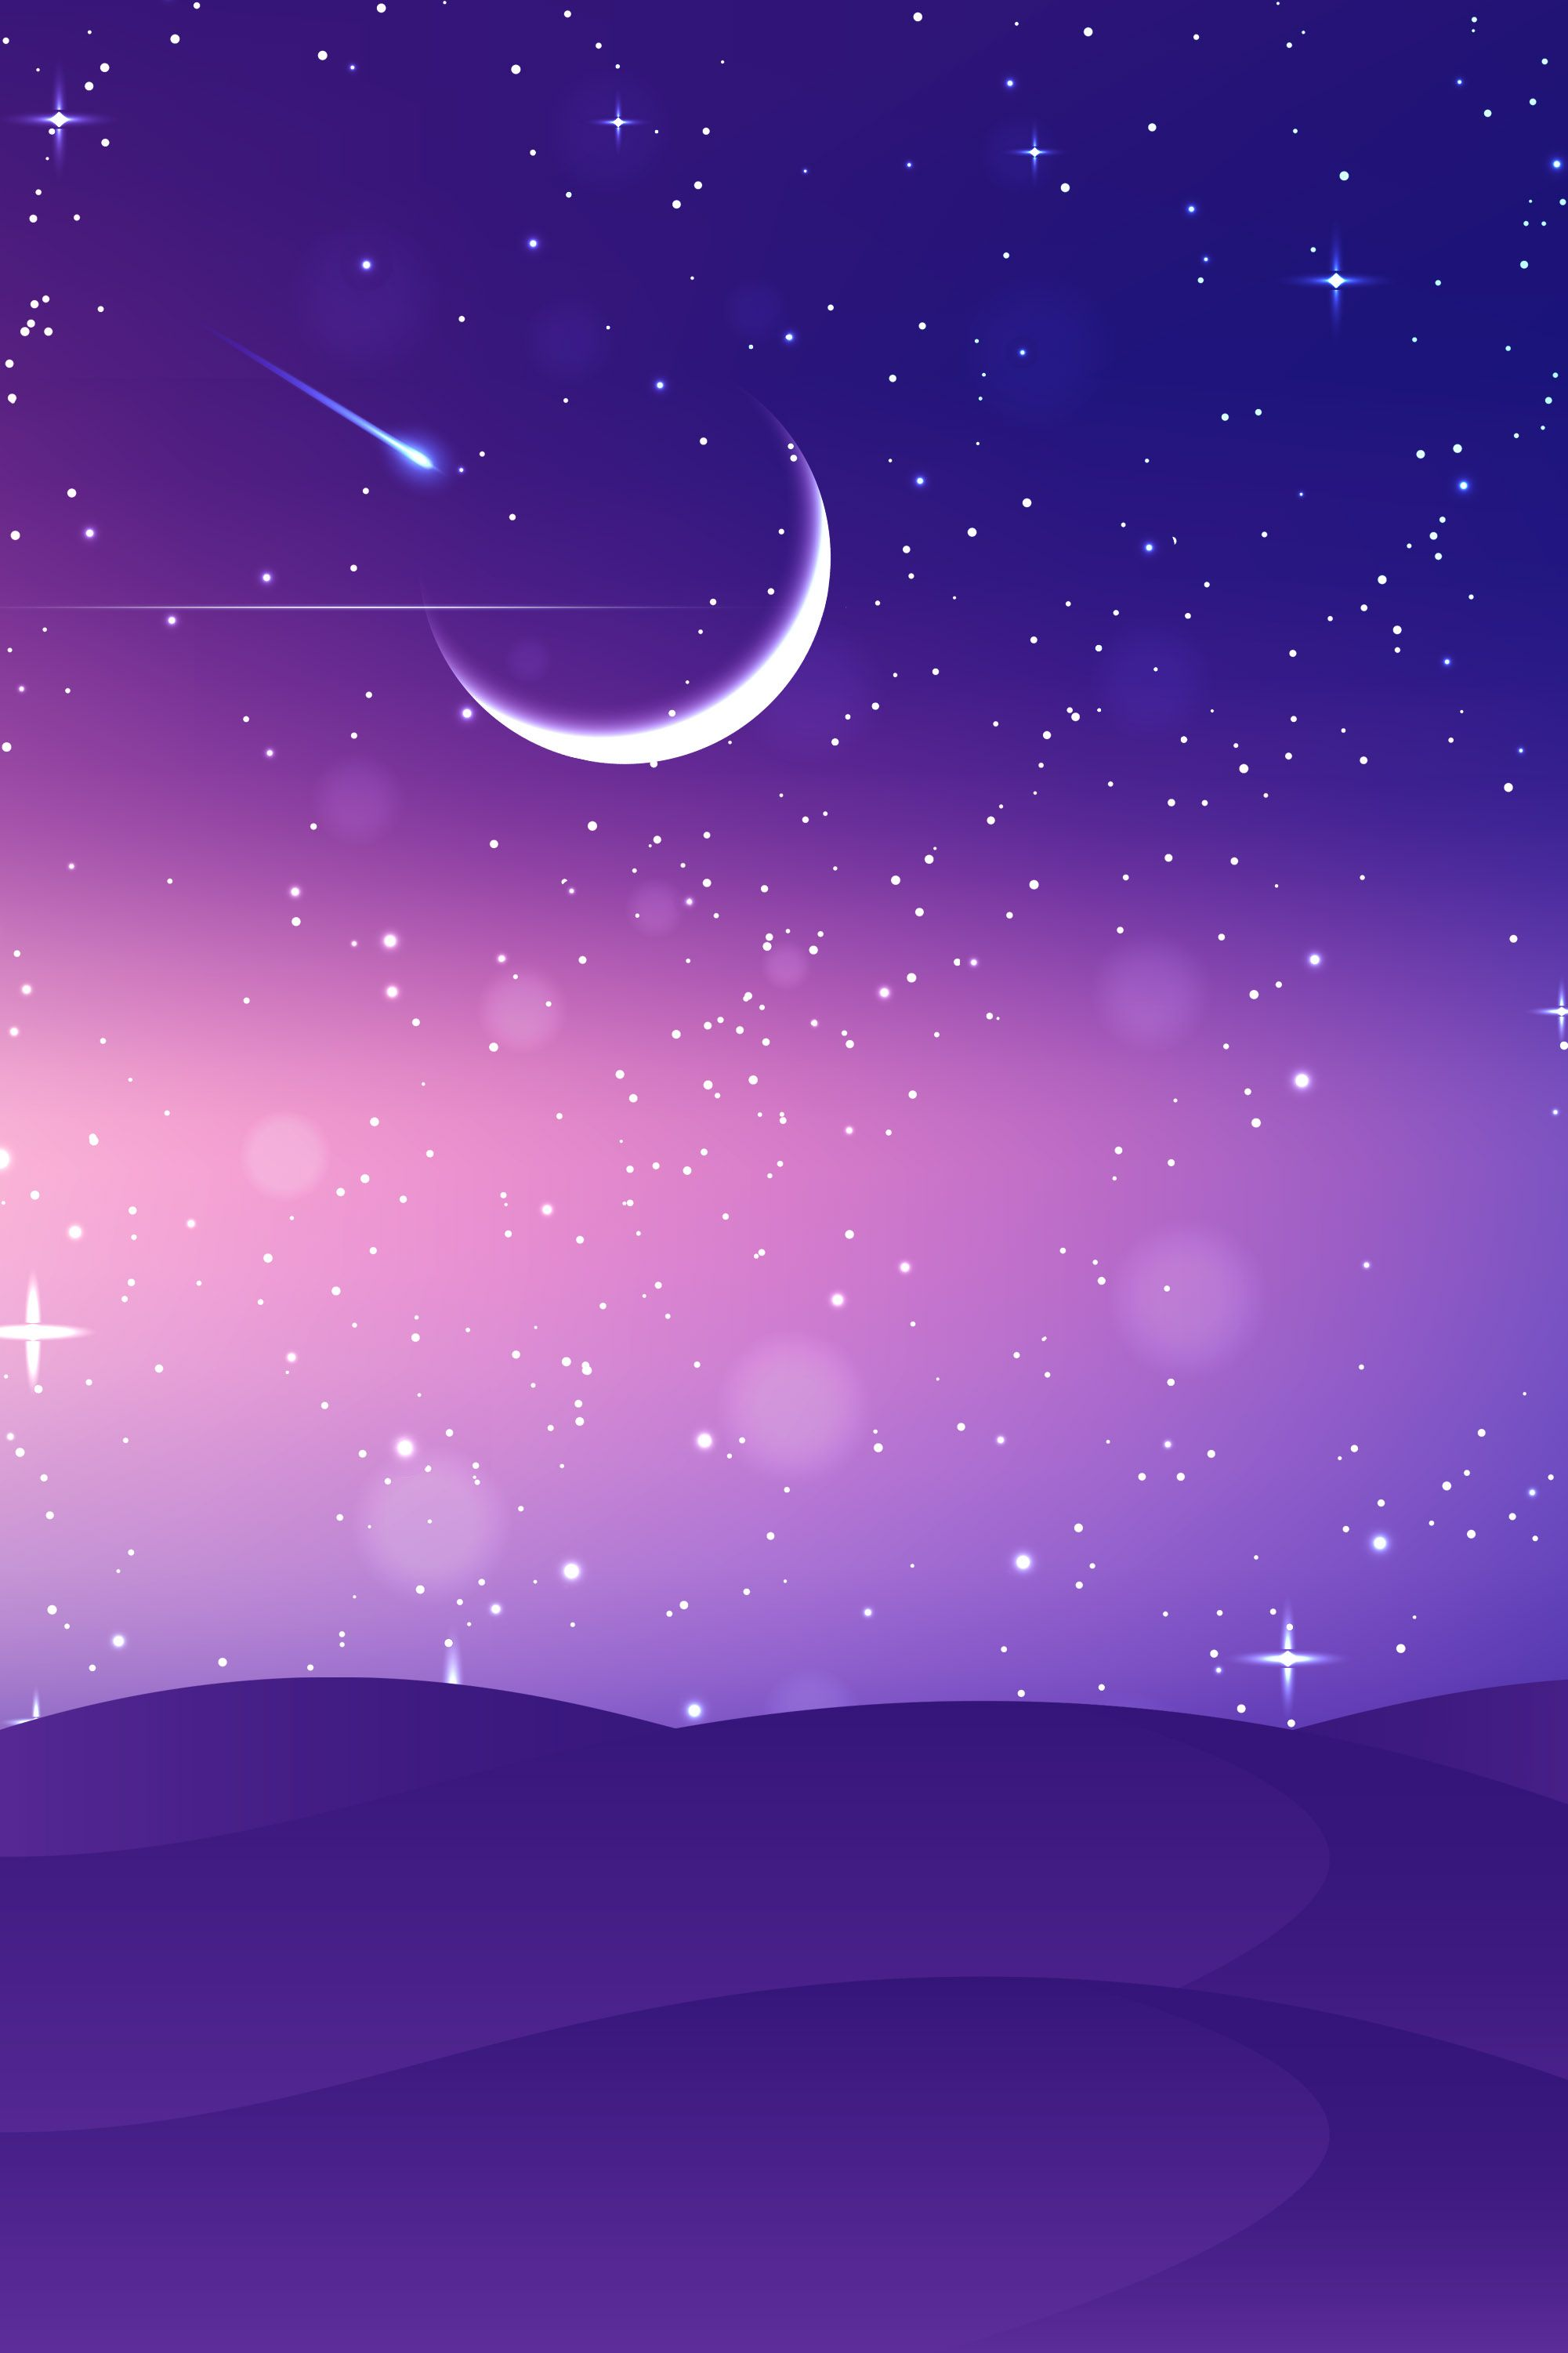 Purple Moon and Stars Wallpapers   Top Free Purple Moon and Stars ...